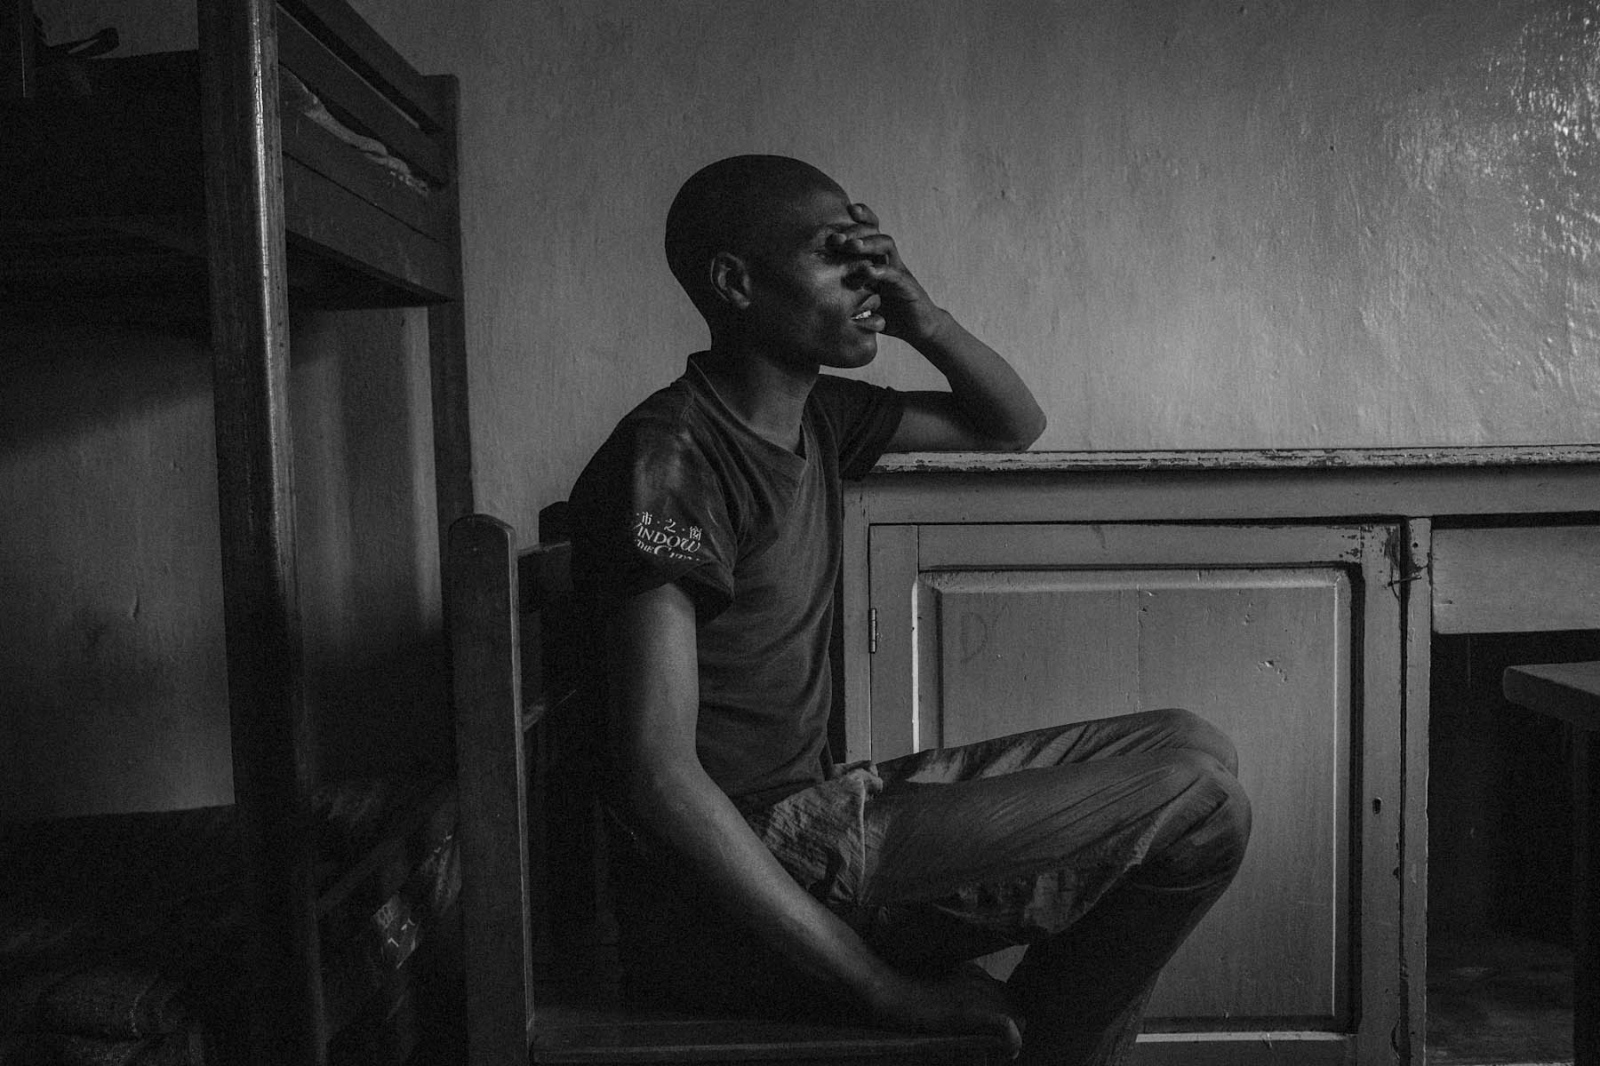 Felix, a former child soldier, at the BVES transit center in Bukavu, Eastern DRC, on Friday, July 25, 2014.